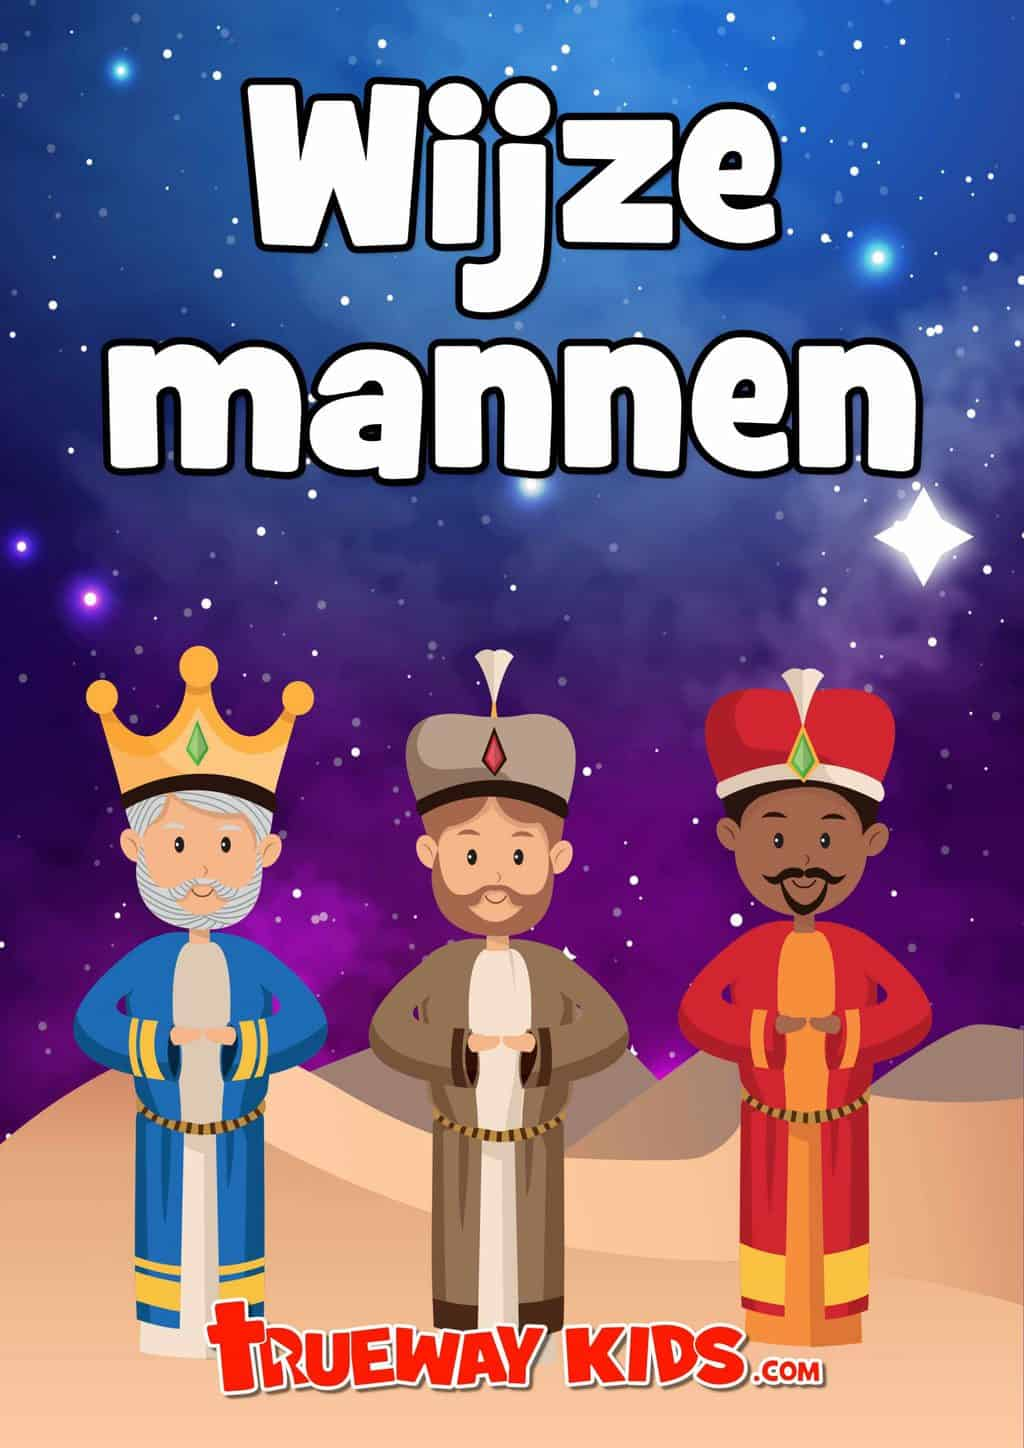 Printable Bible lesson on the Wise Men for preschool children. Learn about the visit of the Magi to Jesus. Herod's response to Jesus Birth and much more. Worksheets, coloring pages, games, activities and crafts all included. #freeprintable ideal for Epiphany Three Kings day